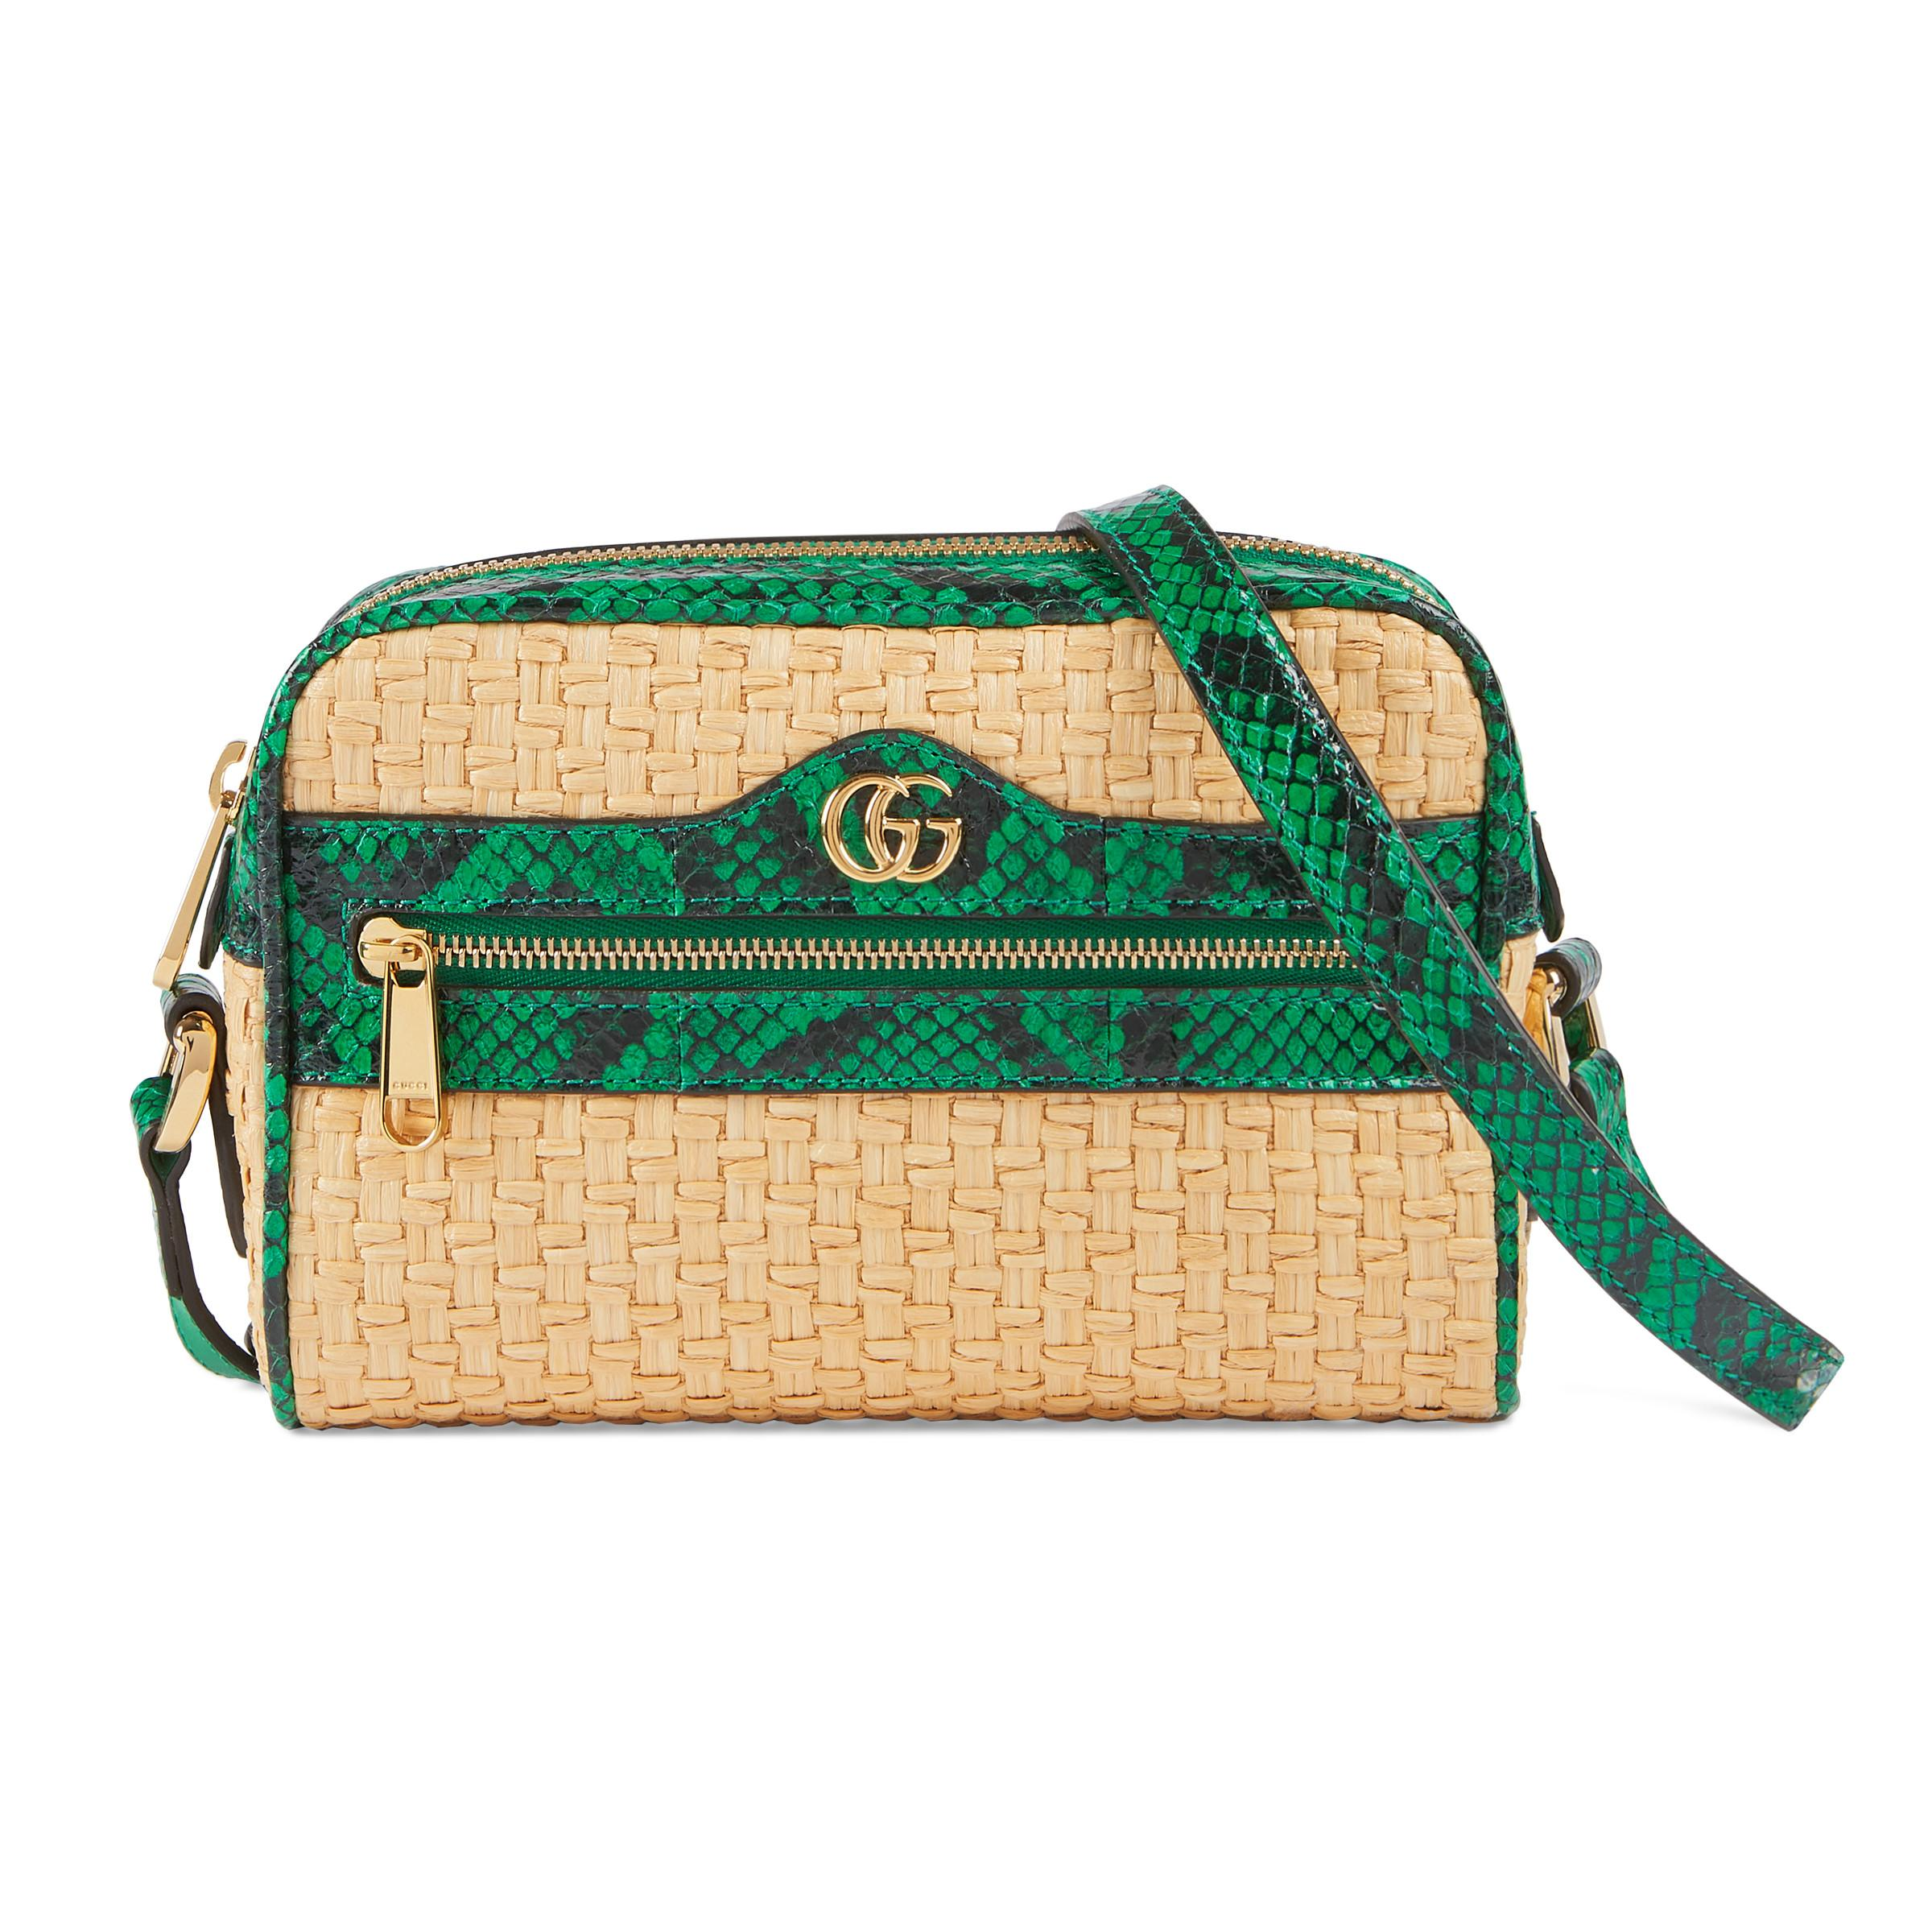 25a6623568ac Gucci Online Exclusive Ophidia Mini Bag in White - Lyst